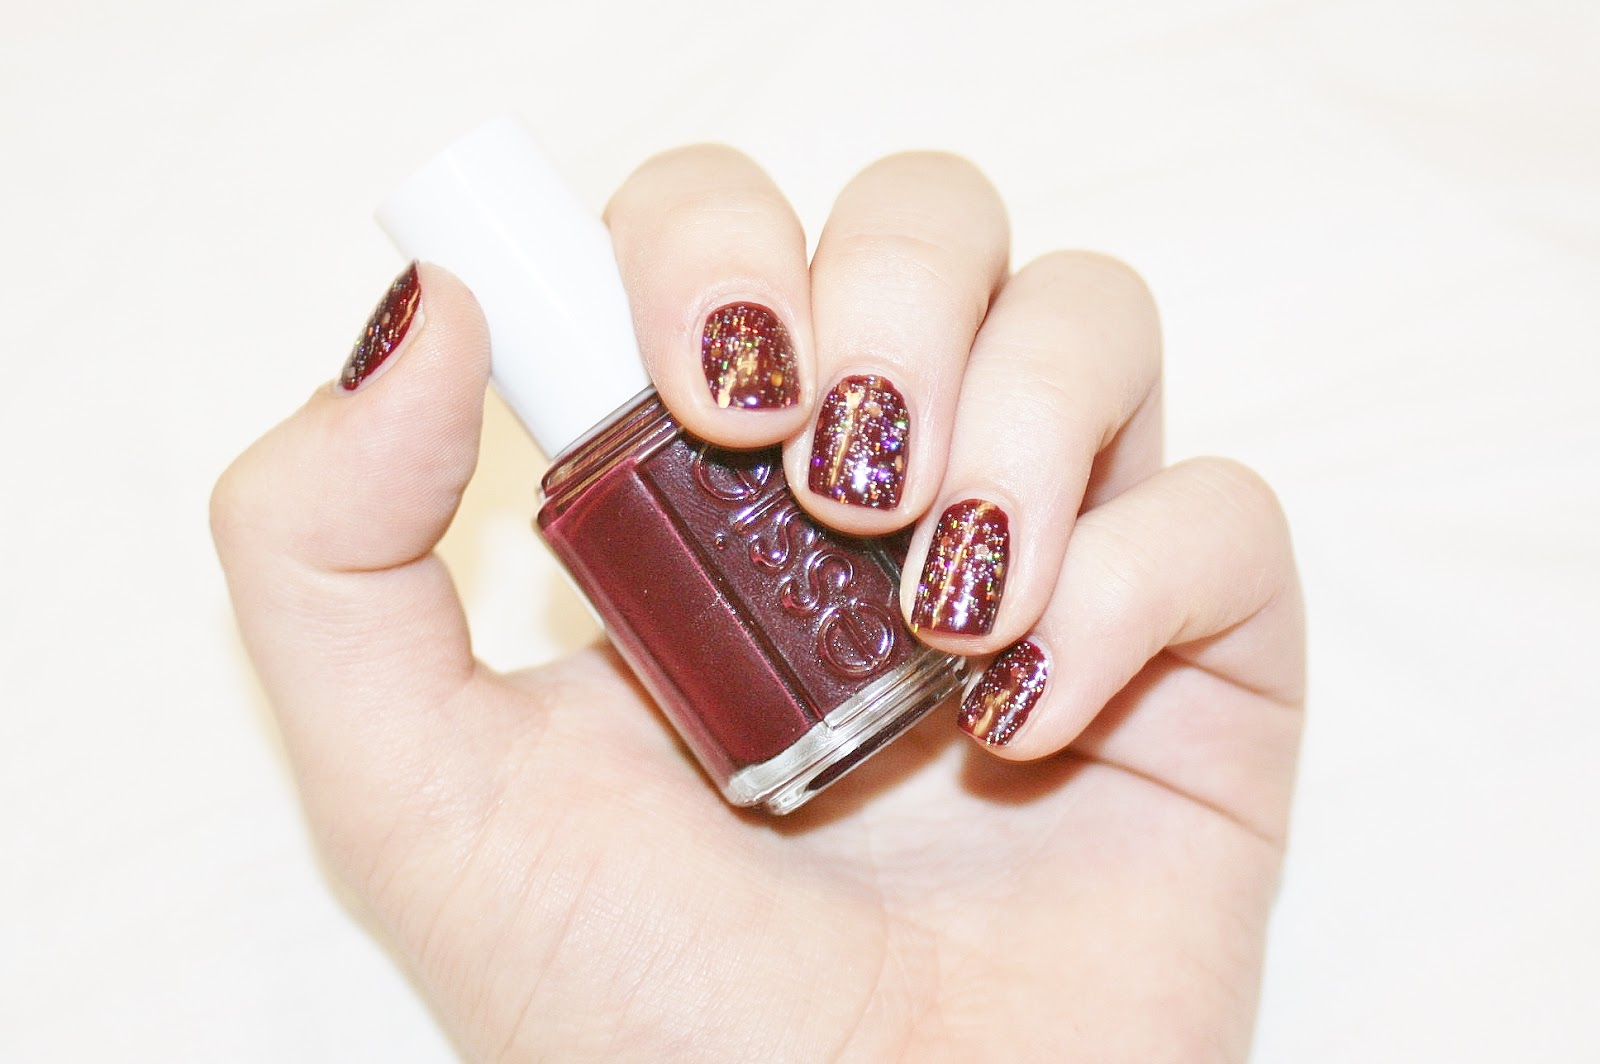 Katherine Penney Chic essie shearling darling rimmel glitter nail polish